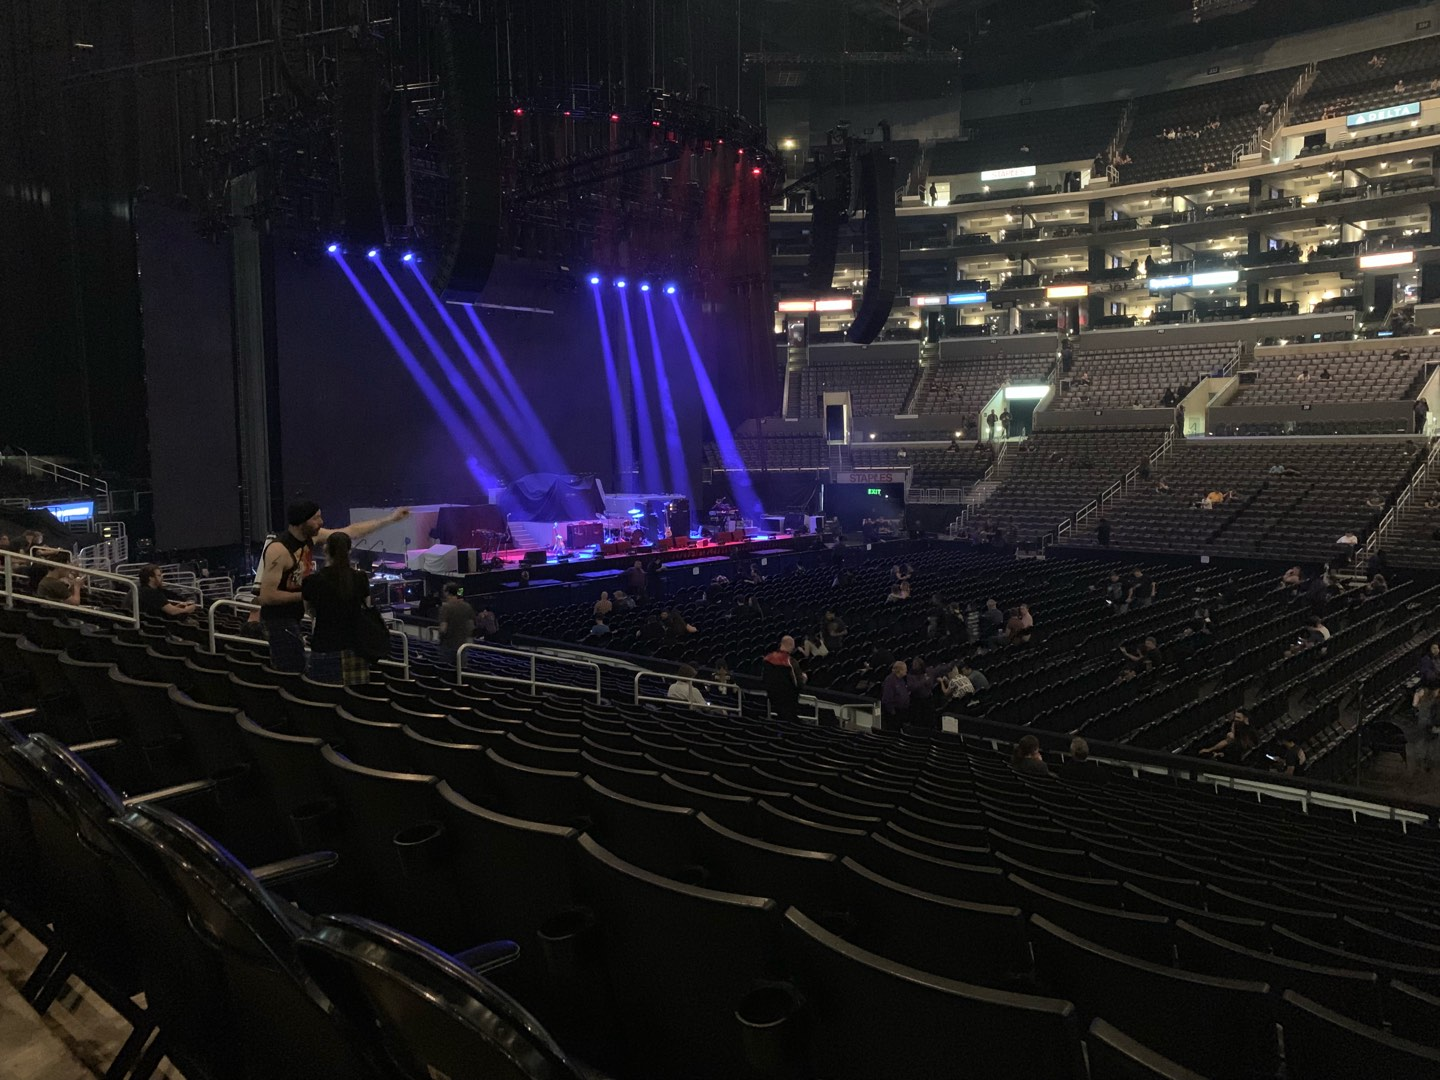 Staples Center Section 111 Row 18 Seat 3